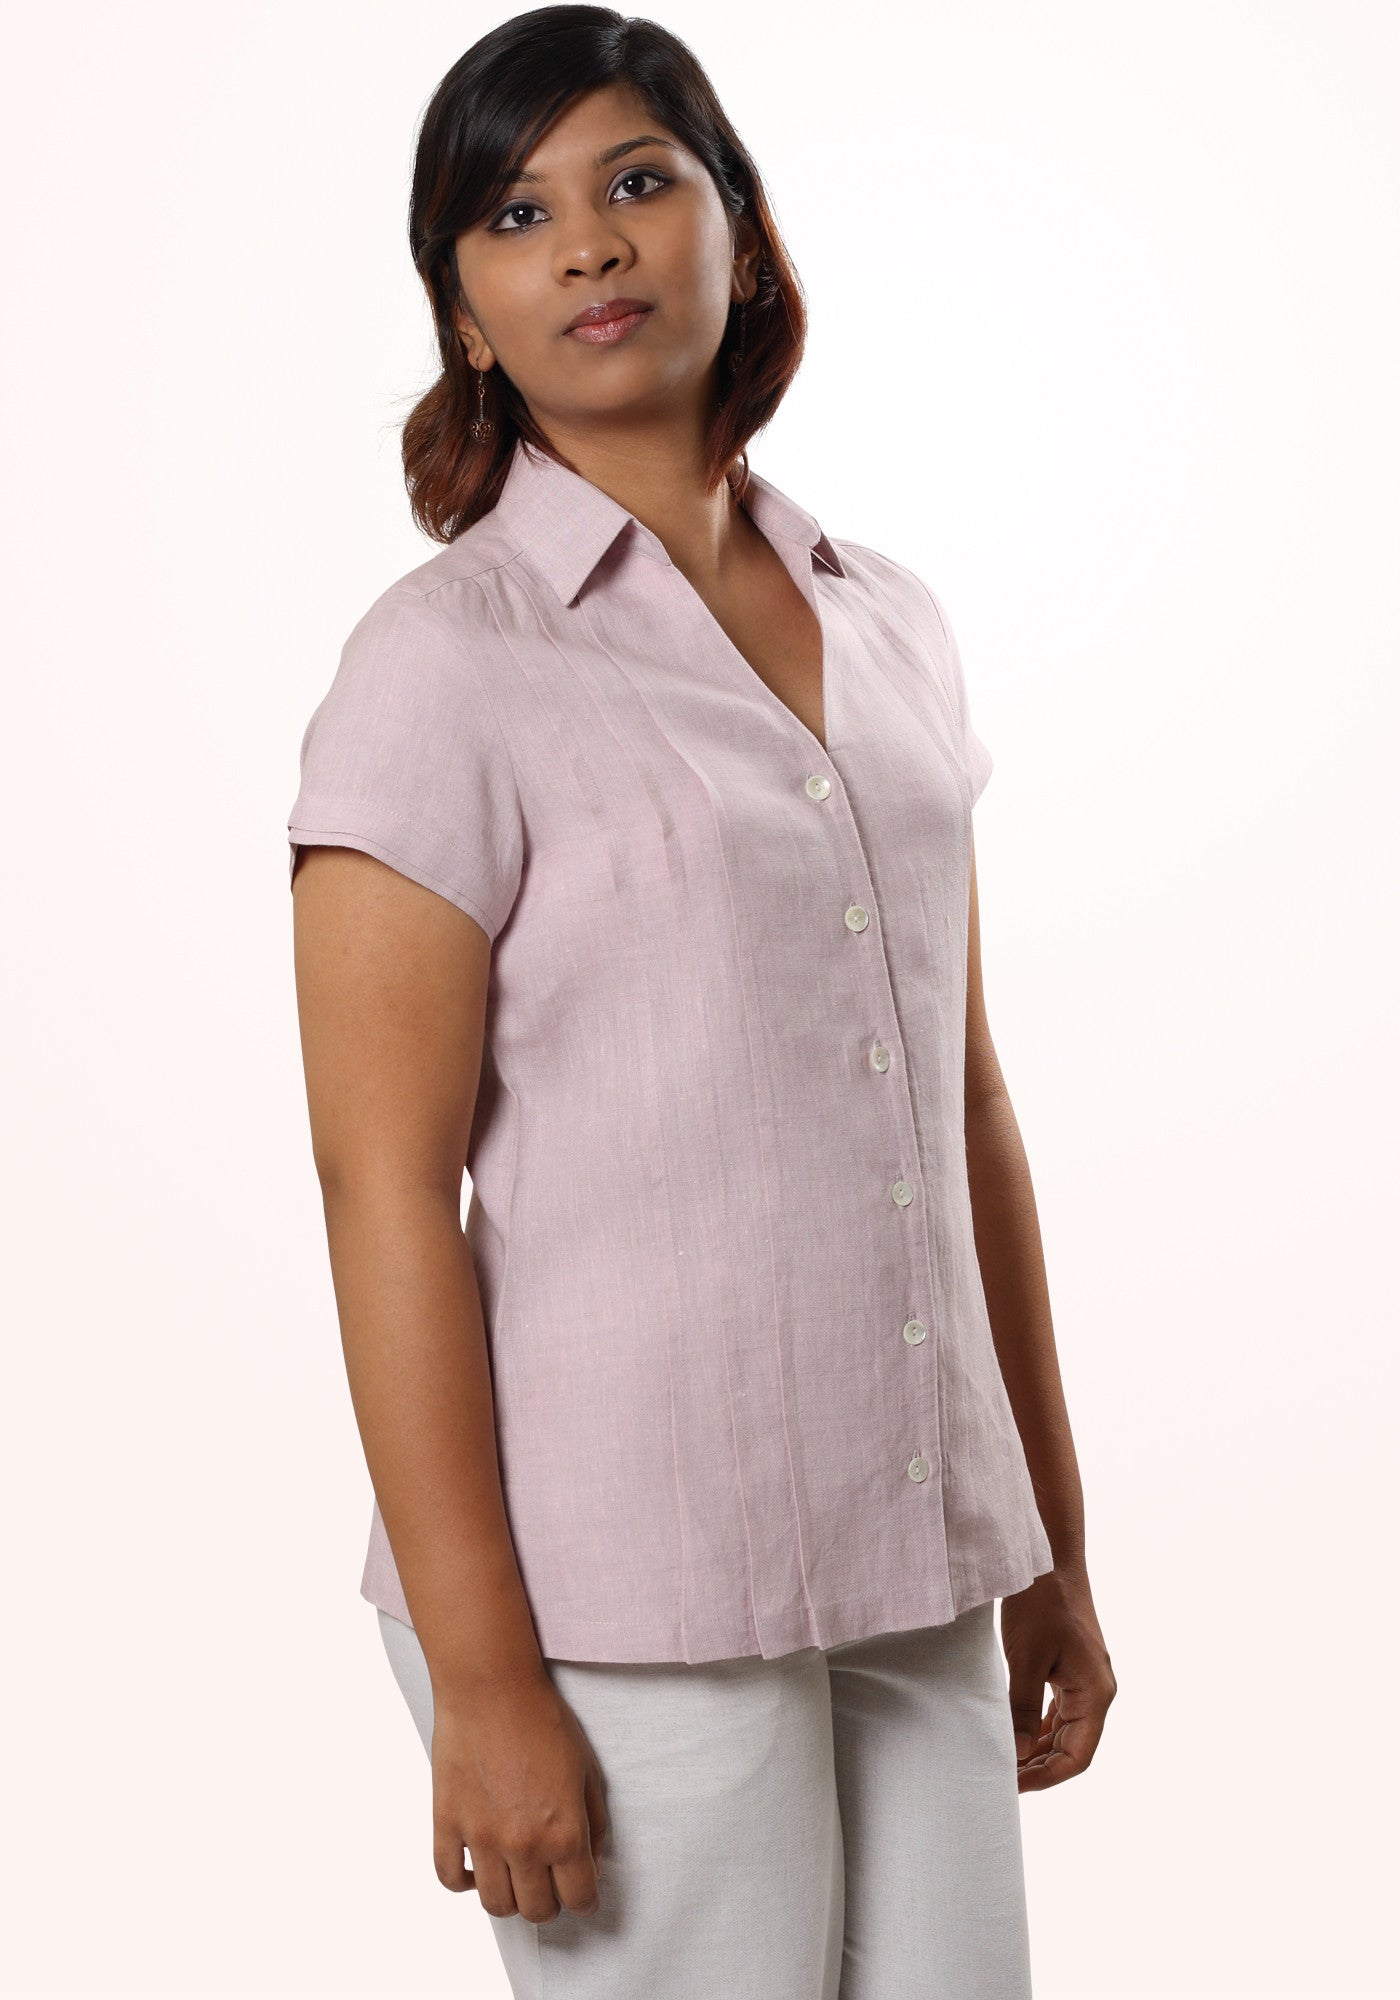 Pleated Linen Shirt in Lavender Linen - MINC ecofashion